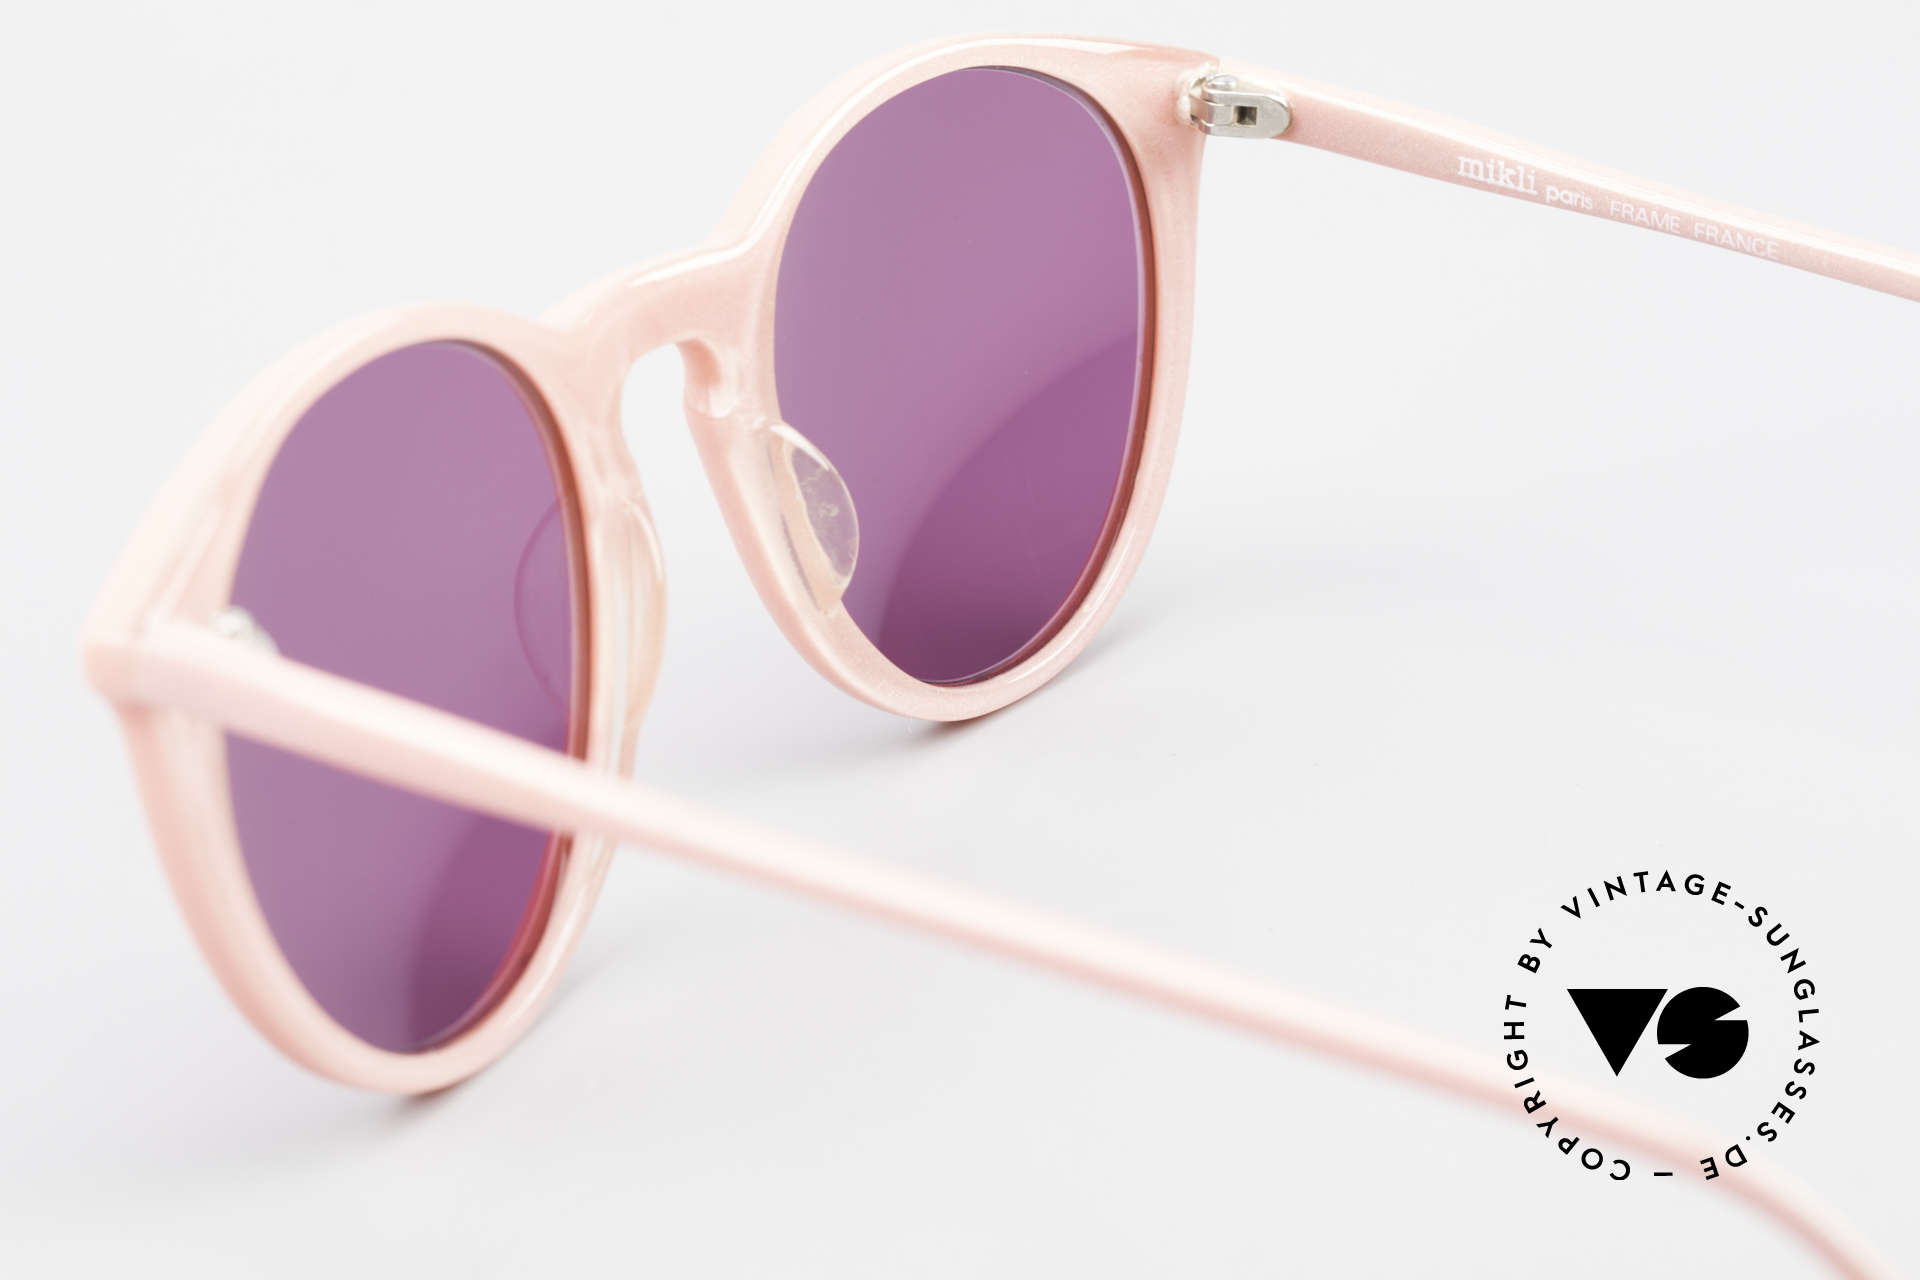 Alain Mikli 901 / 081 Panto Sunglasses Purple Pink, NO RETRO shades, but an old ORIGINAL from 1989, Made for Women